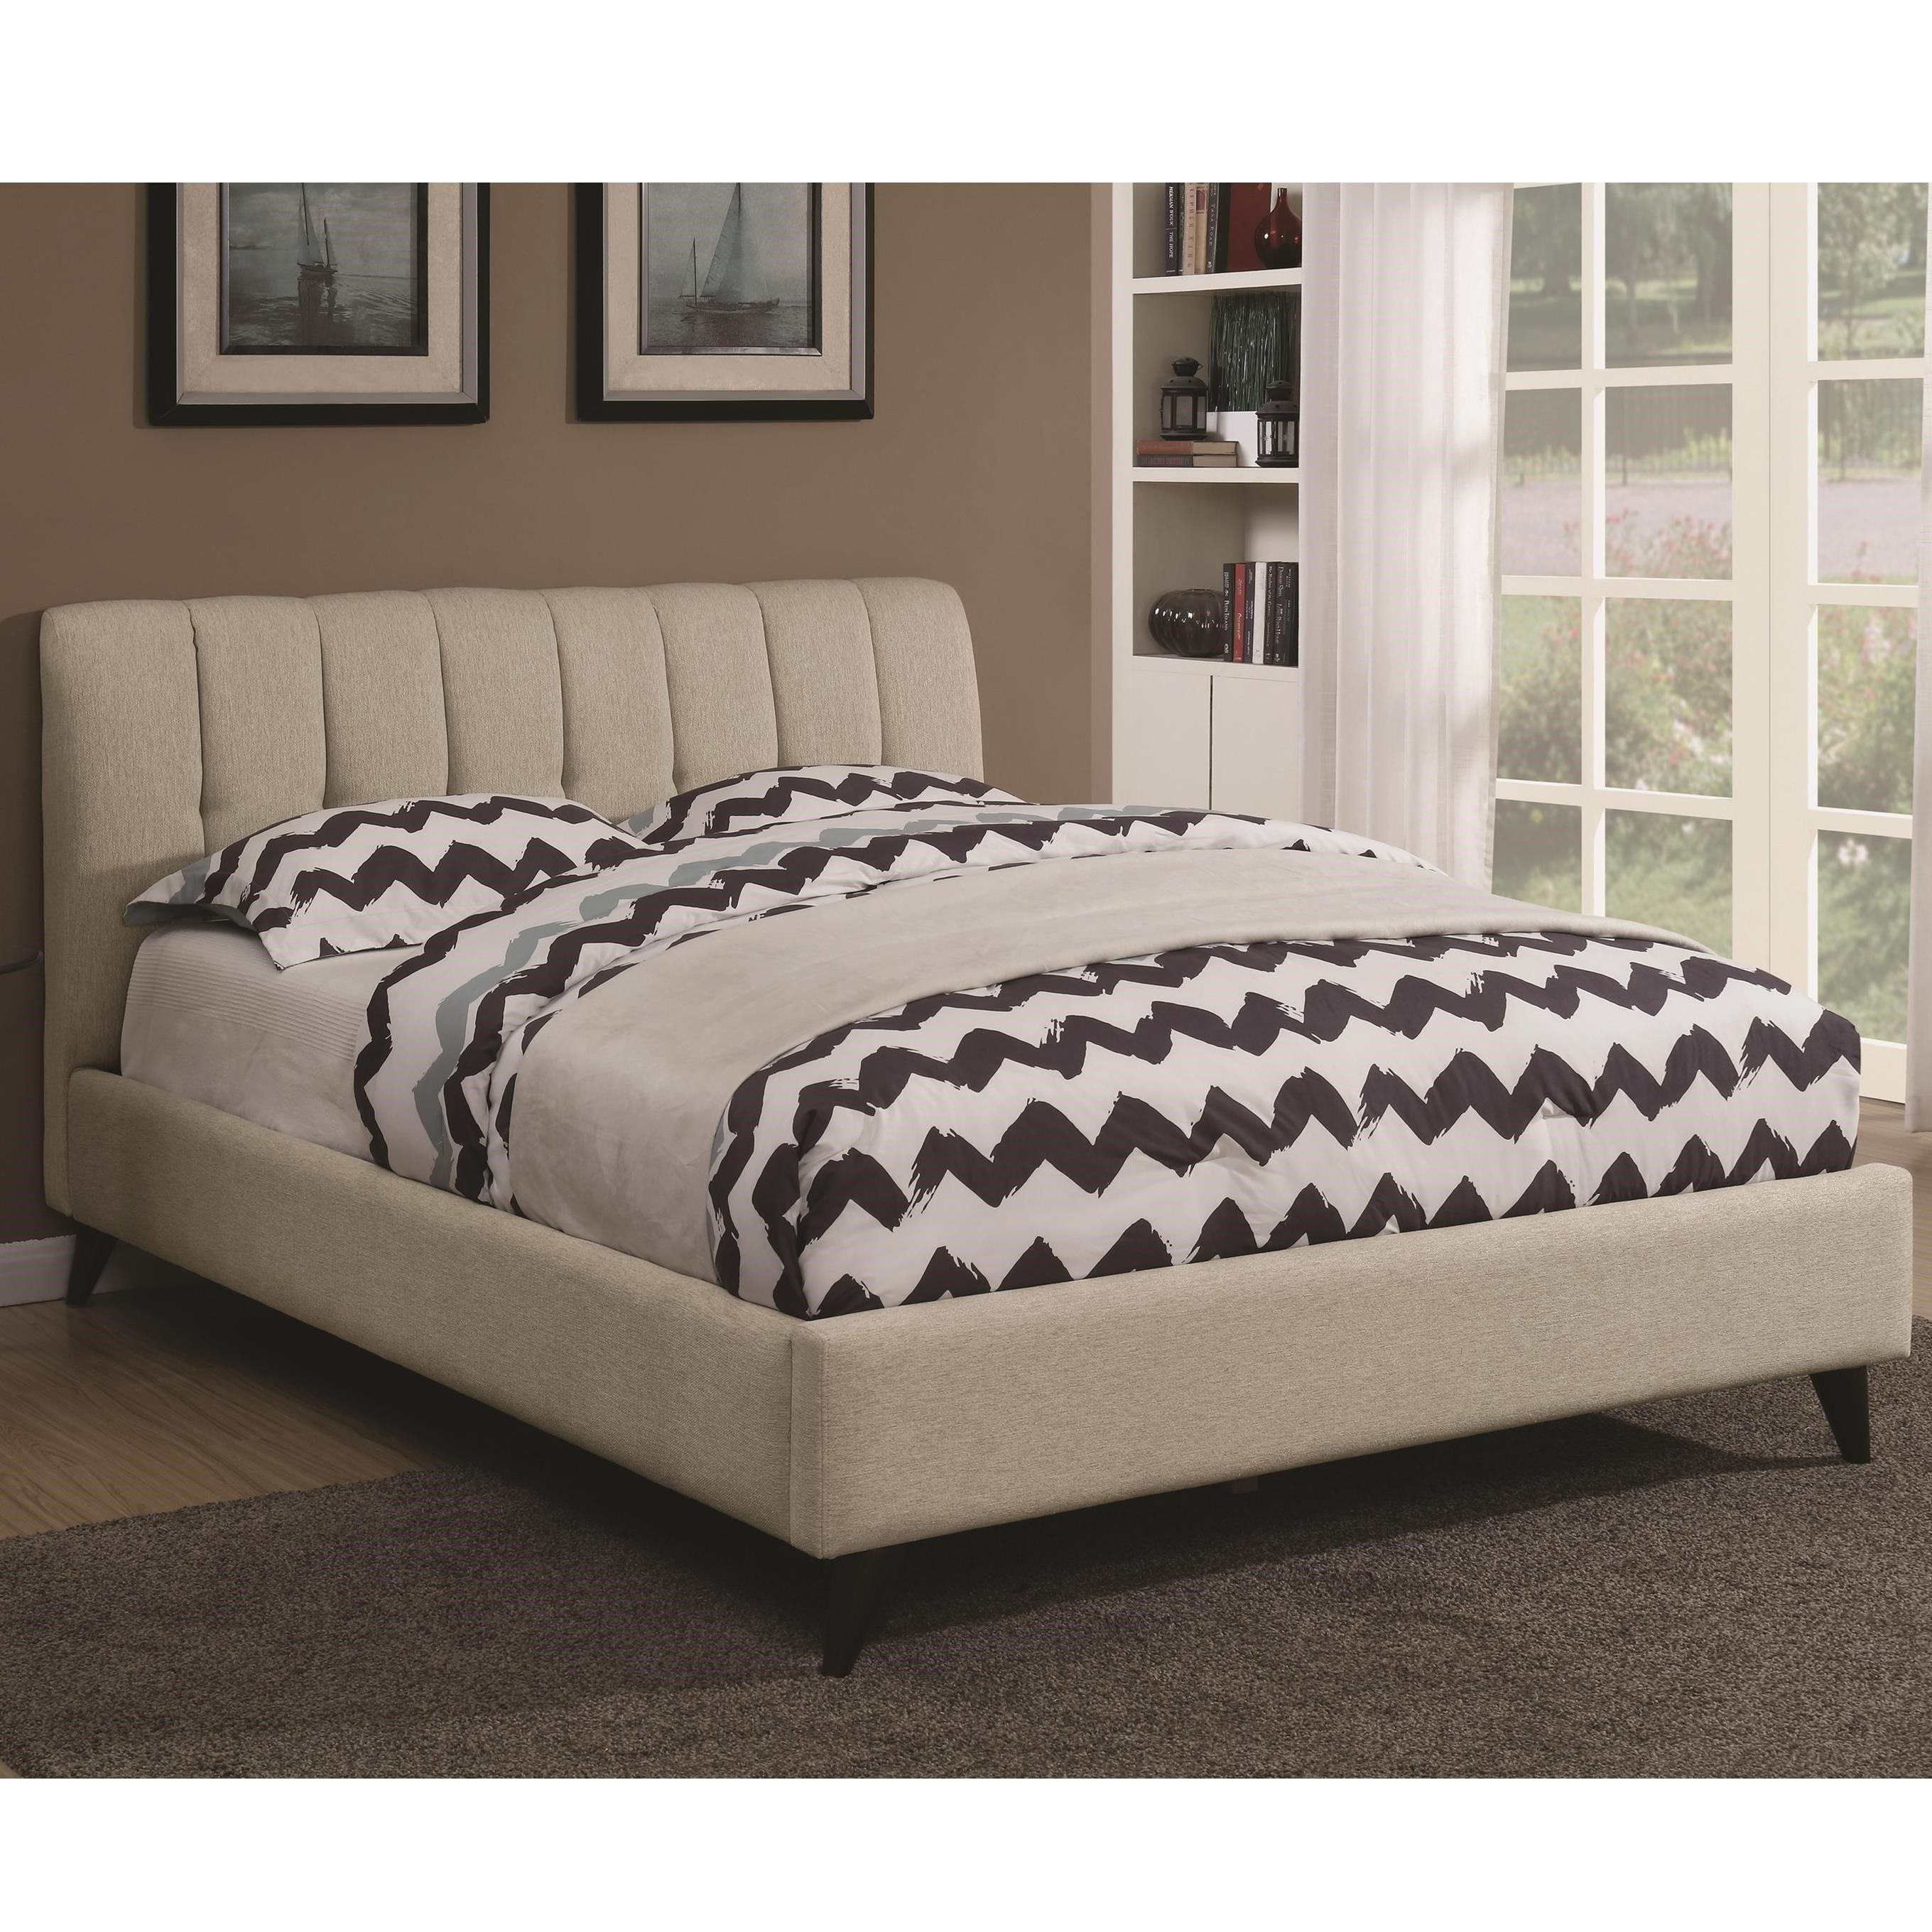 Modern upholstered bed Twin Portola Mid Century Modern Upholstered Queen Bed By Coaster Dunk Bright Furniture Coaster Portola 300754q Mid Century Modern Upholstered Queen Bed